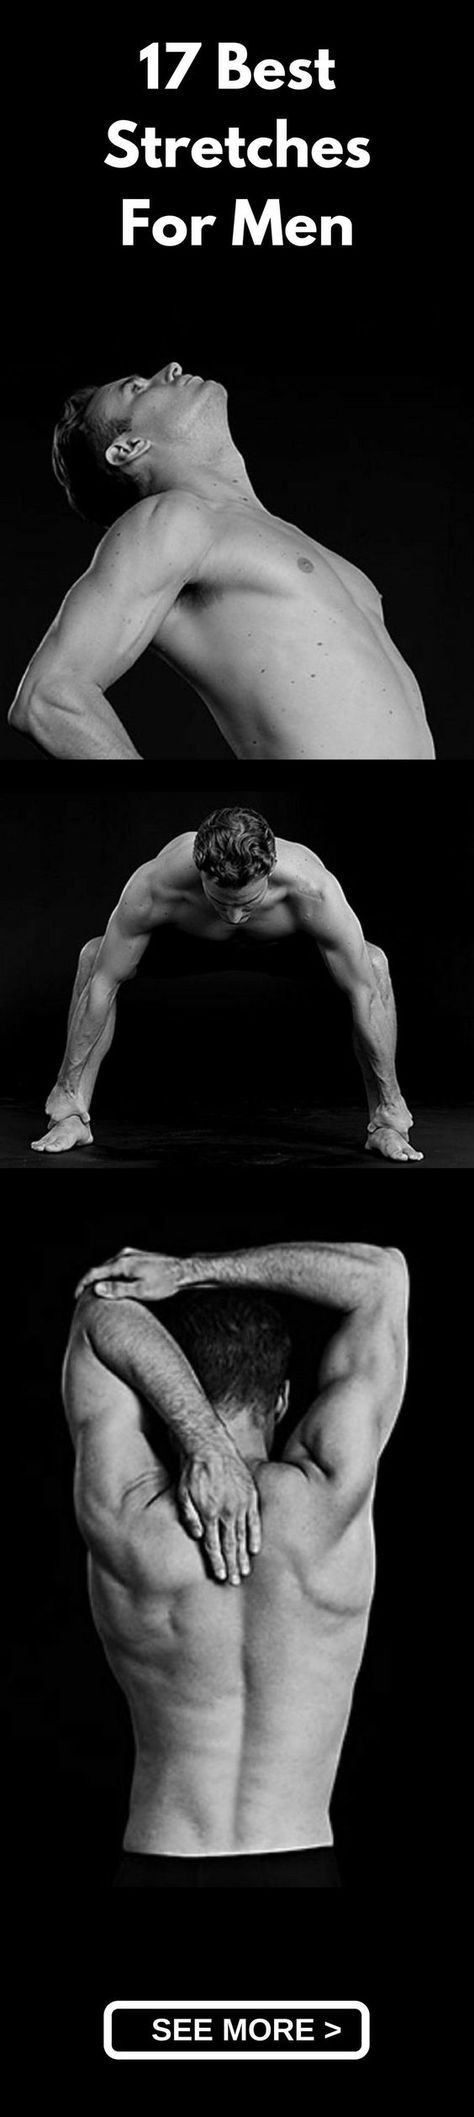 Men's Fitness : 17 Must-Do Stretches For Men | Pinterest | Stretches, Workout and Exercises